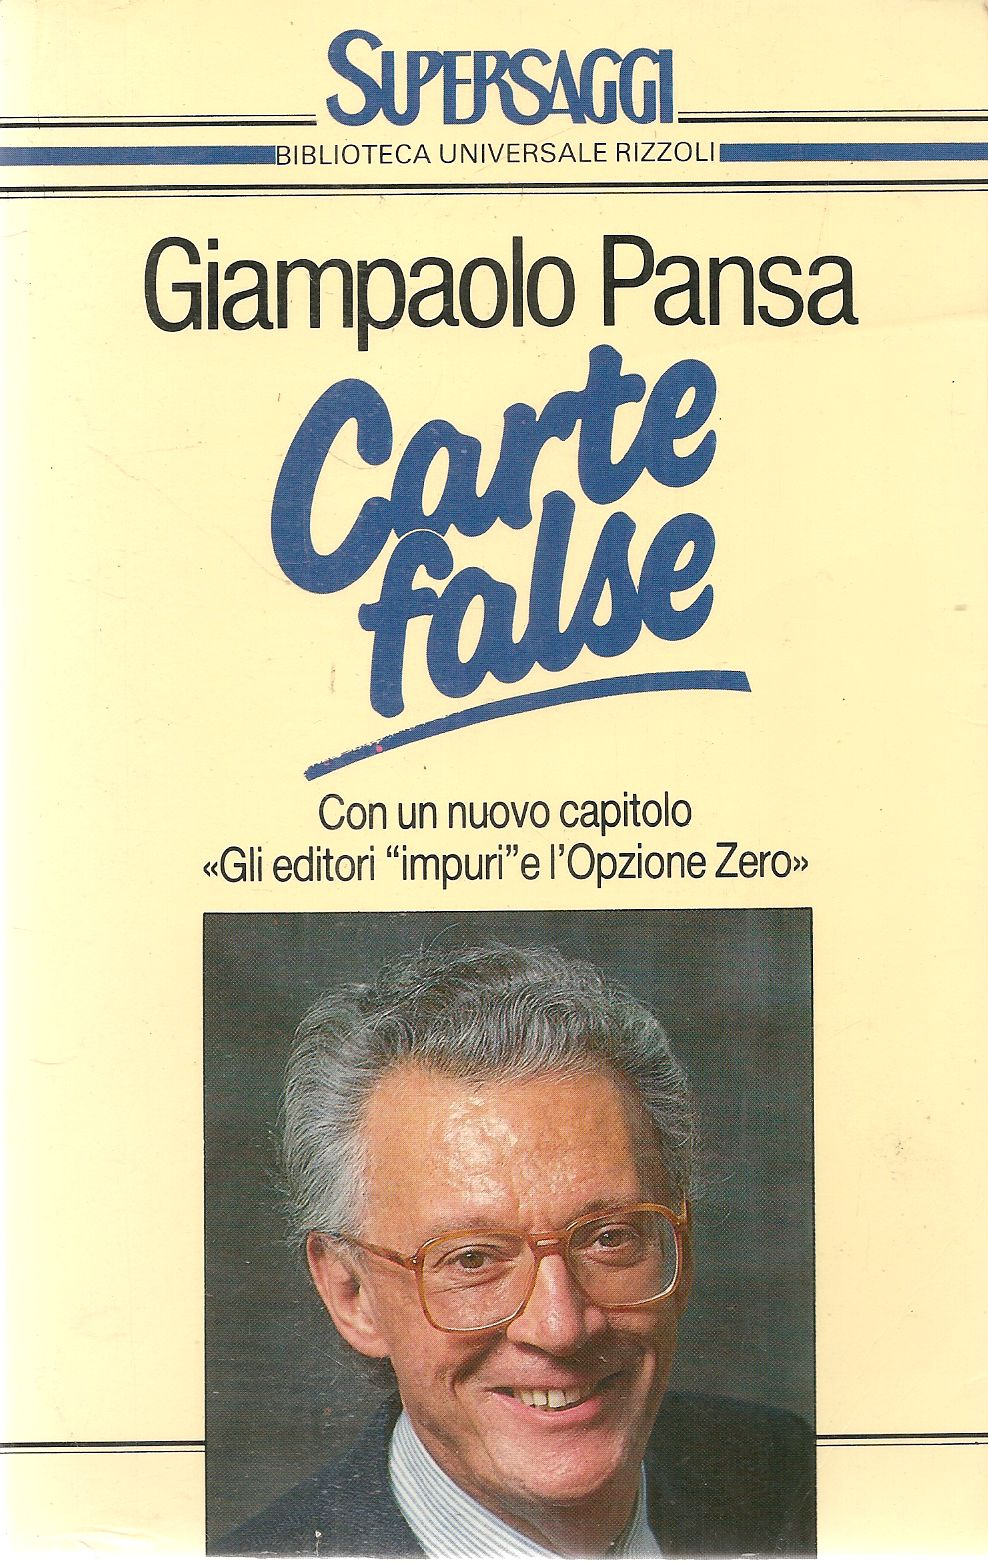 CARTE FALSE - GIANPAOLO PANSA - SUPERBUR 1988